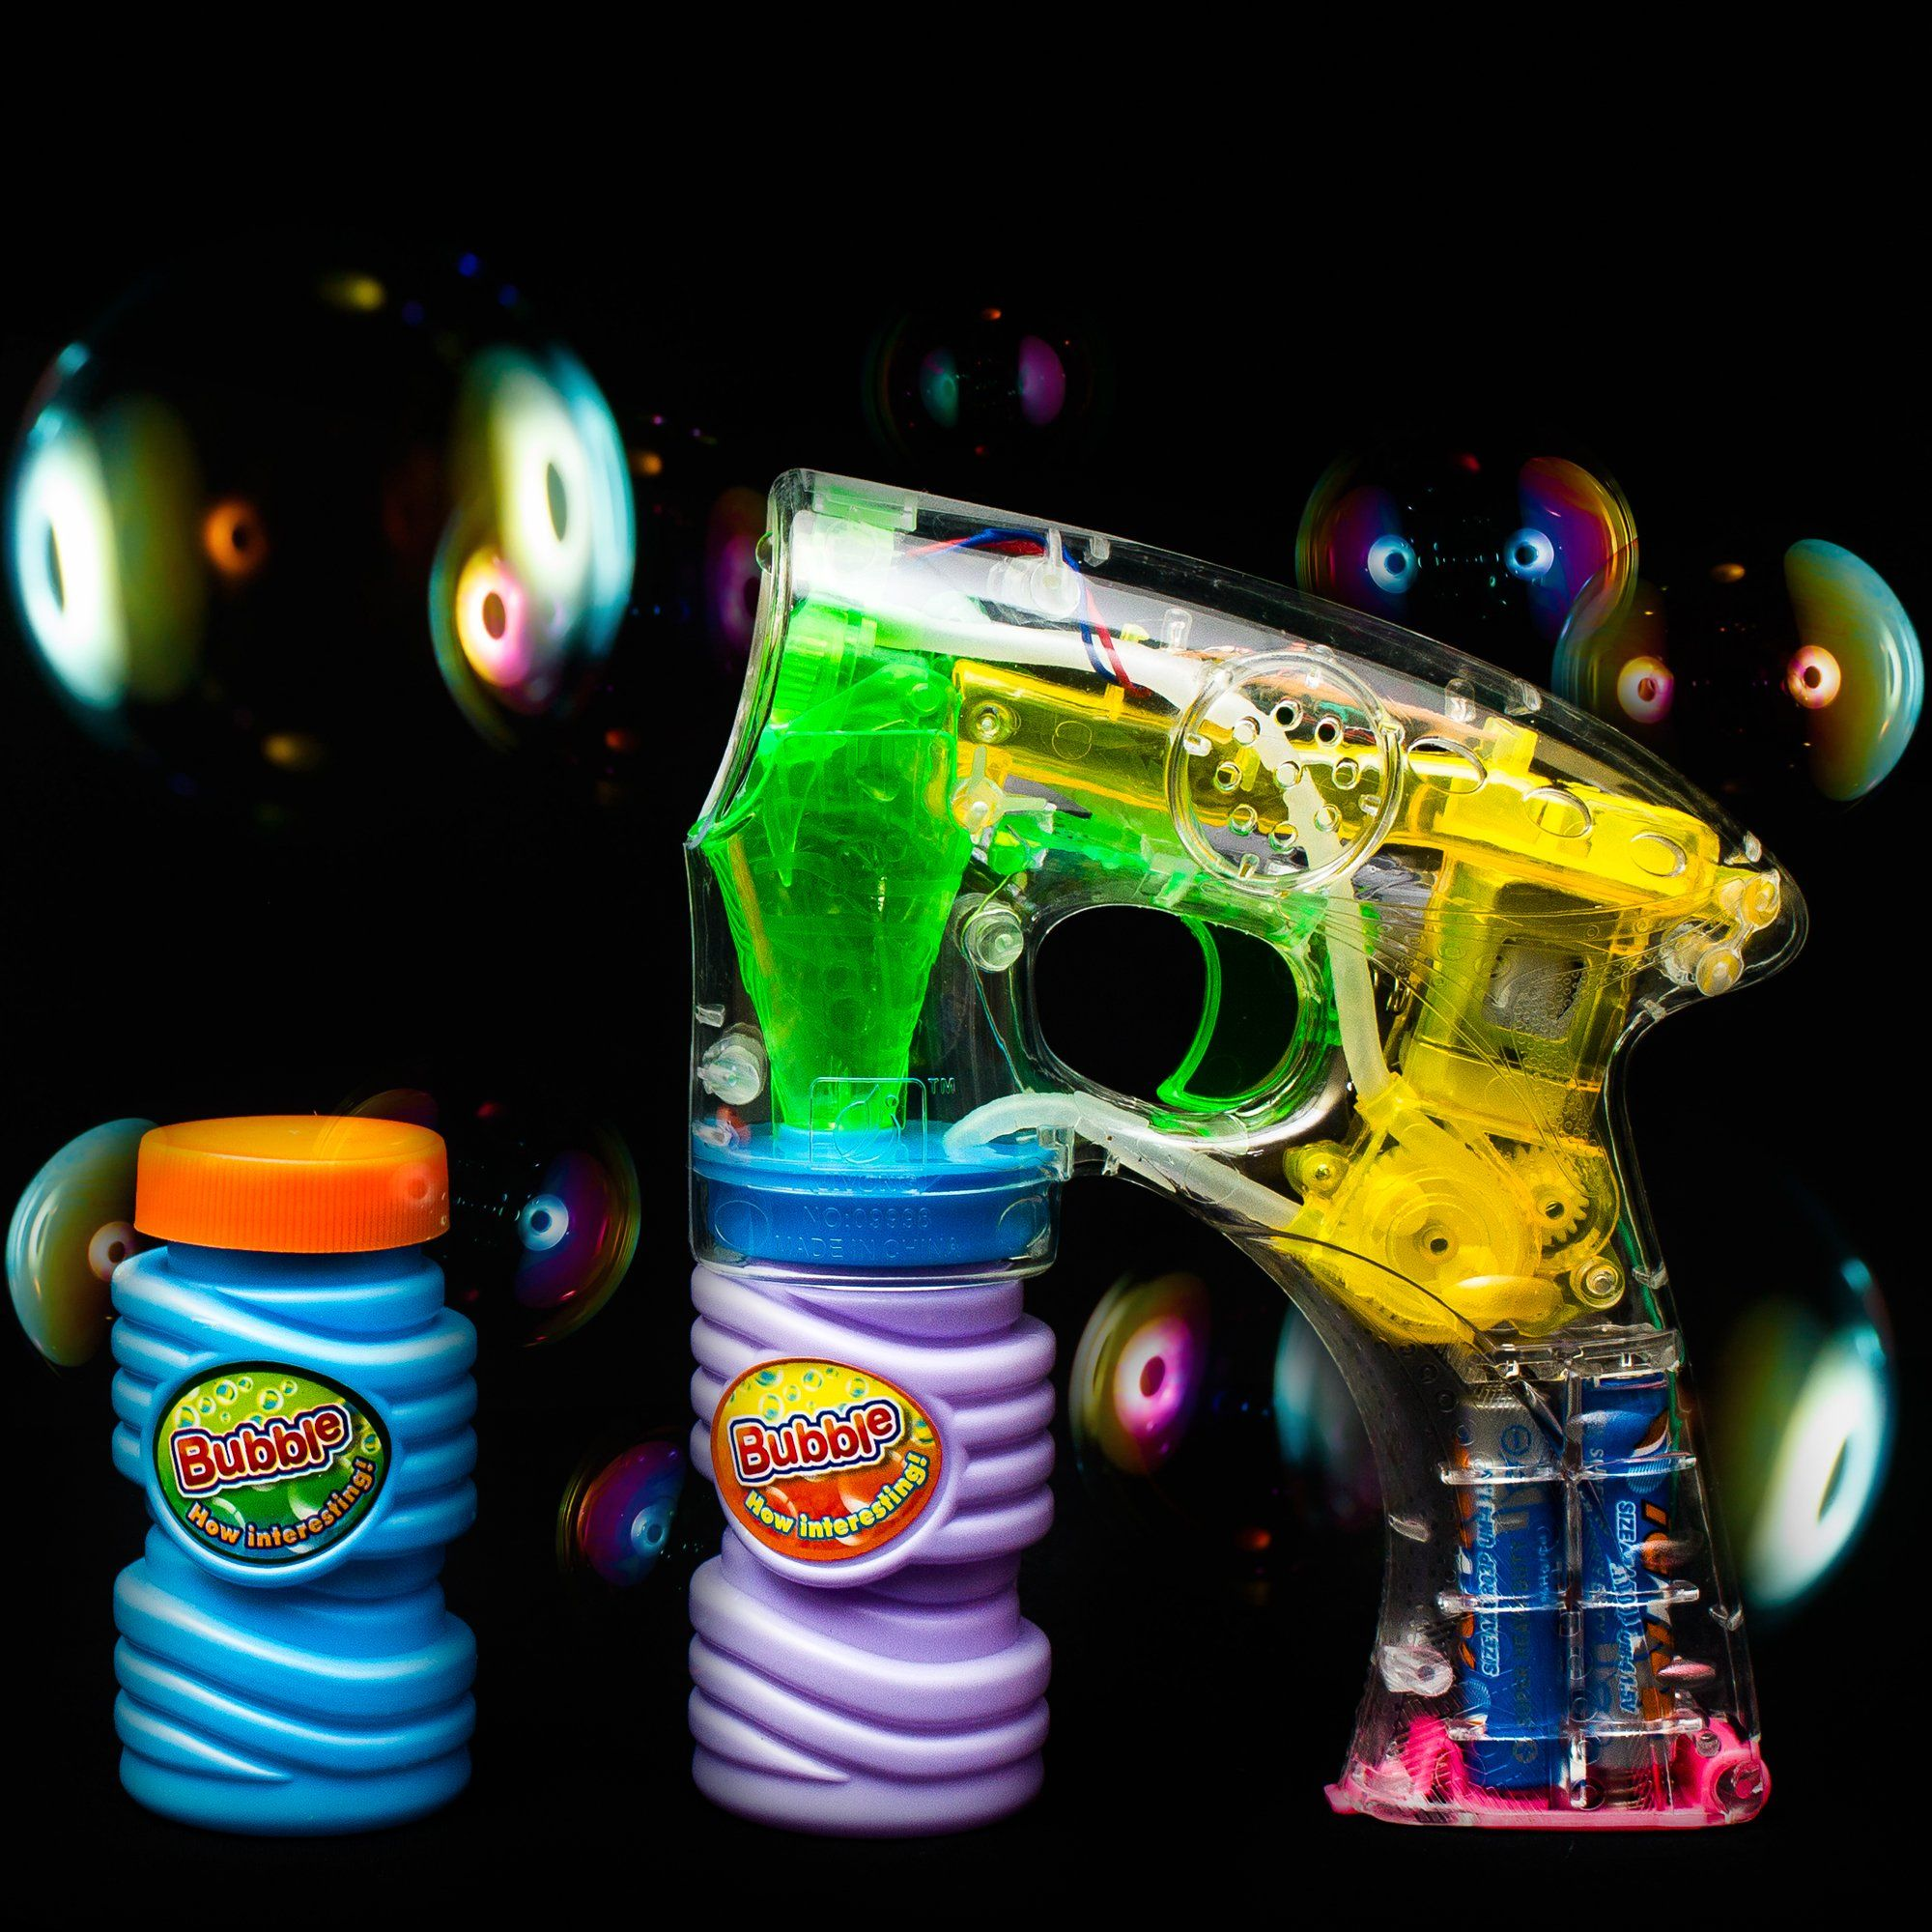 Fun Central C205 LED Light Up Bubble Gun 6 Inch 3 Pack LED